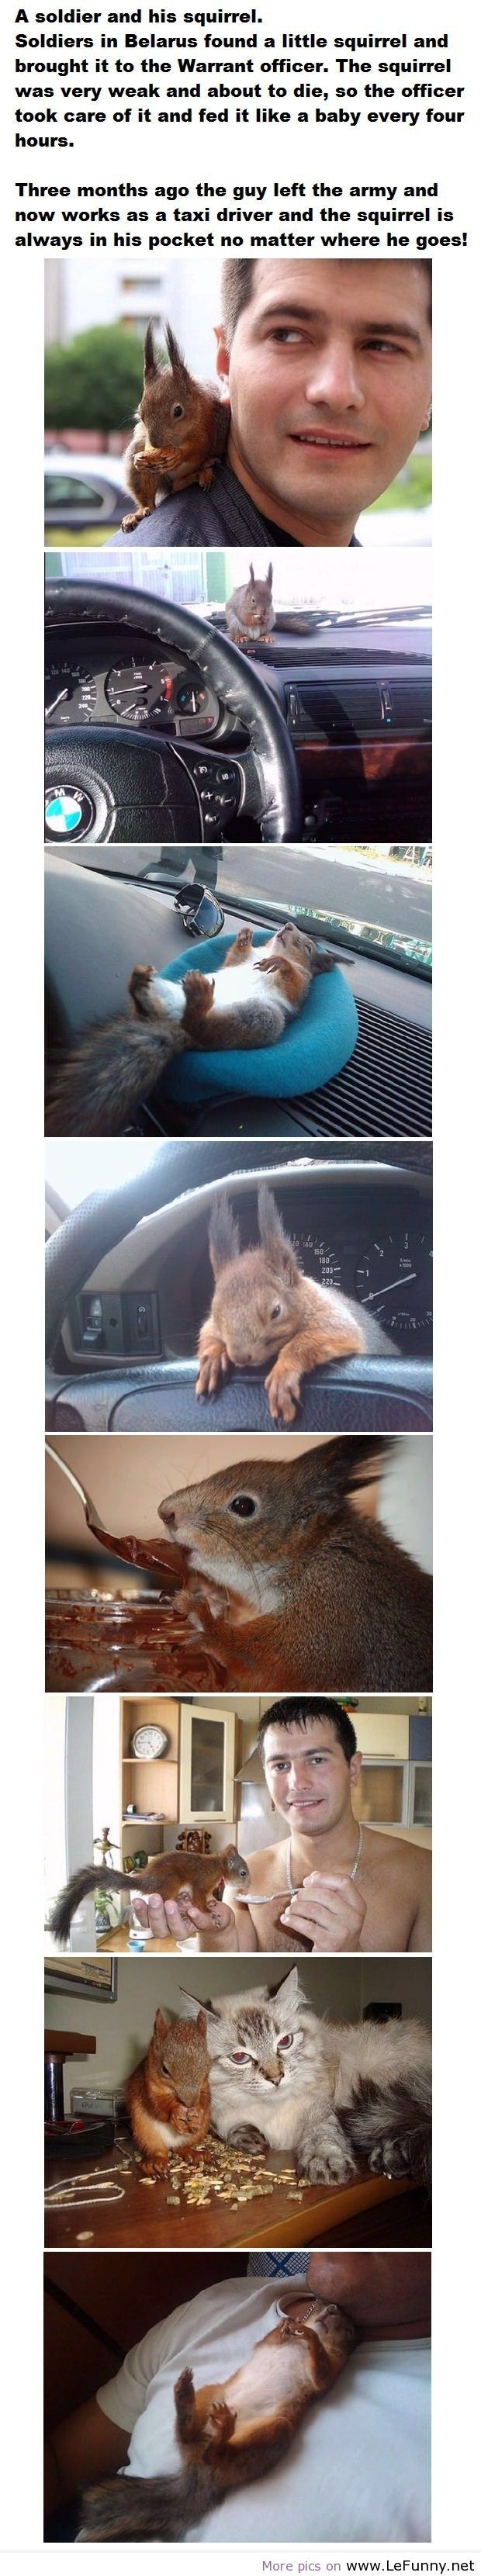 A Squirrel and a Soldier. This guy is my hero!